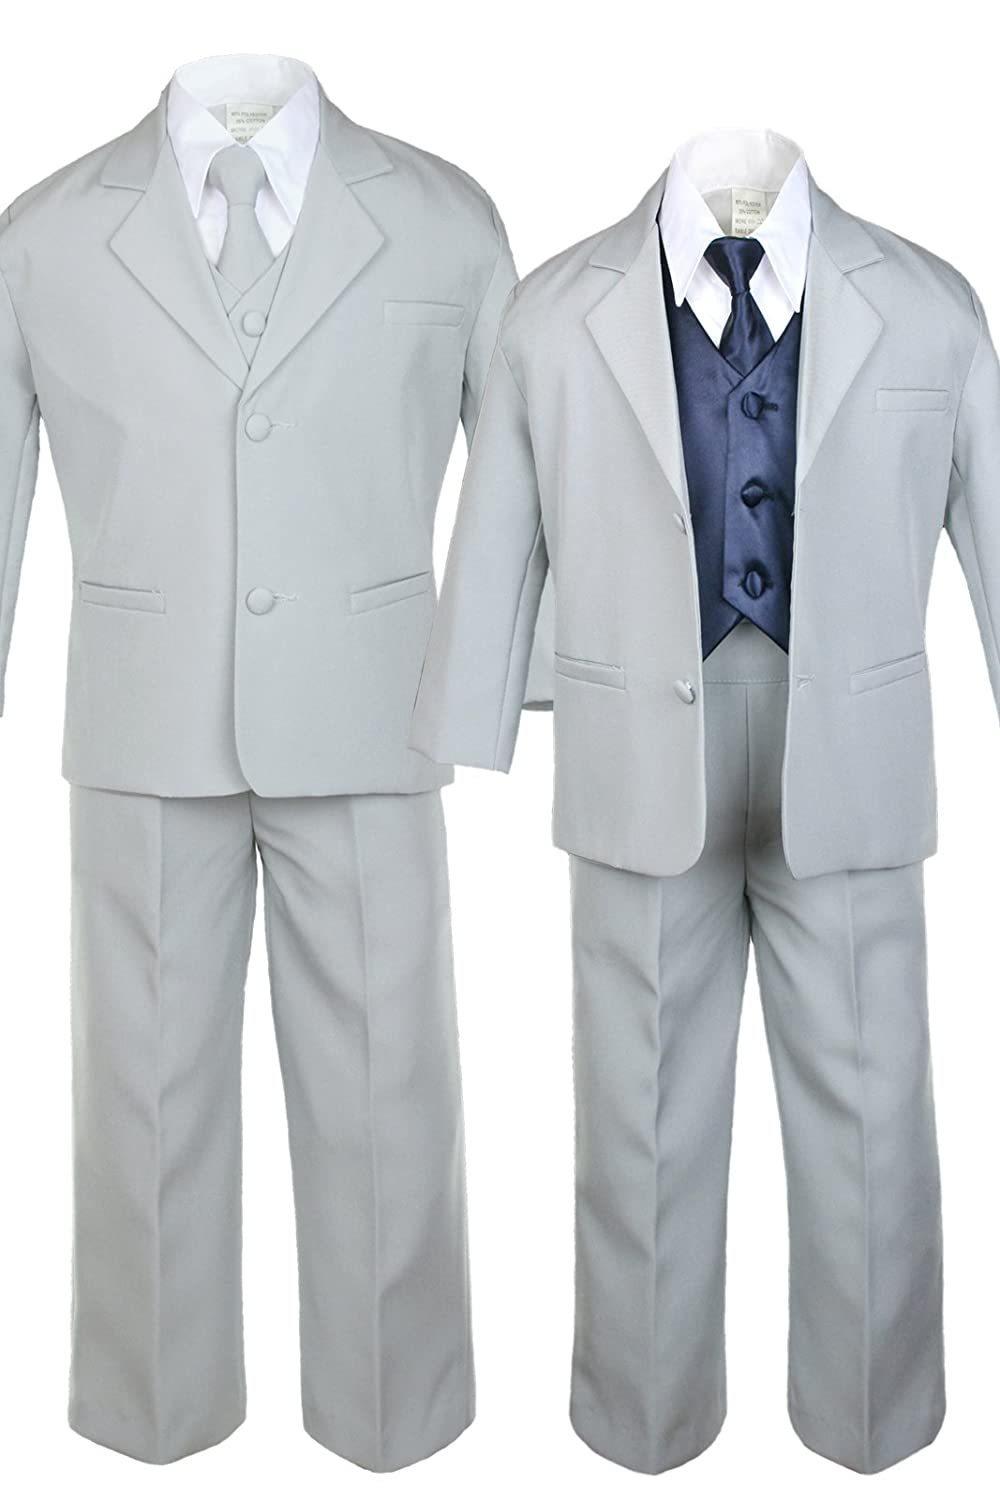 Unotux 7pc Boys Silver Suit with Satin Navy Vest Set from Baby to Teen